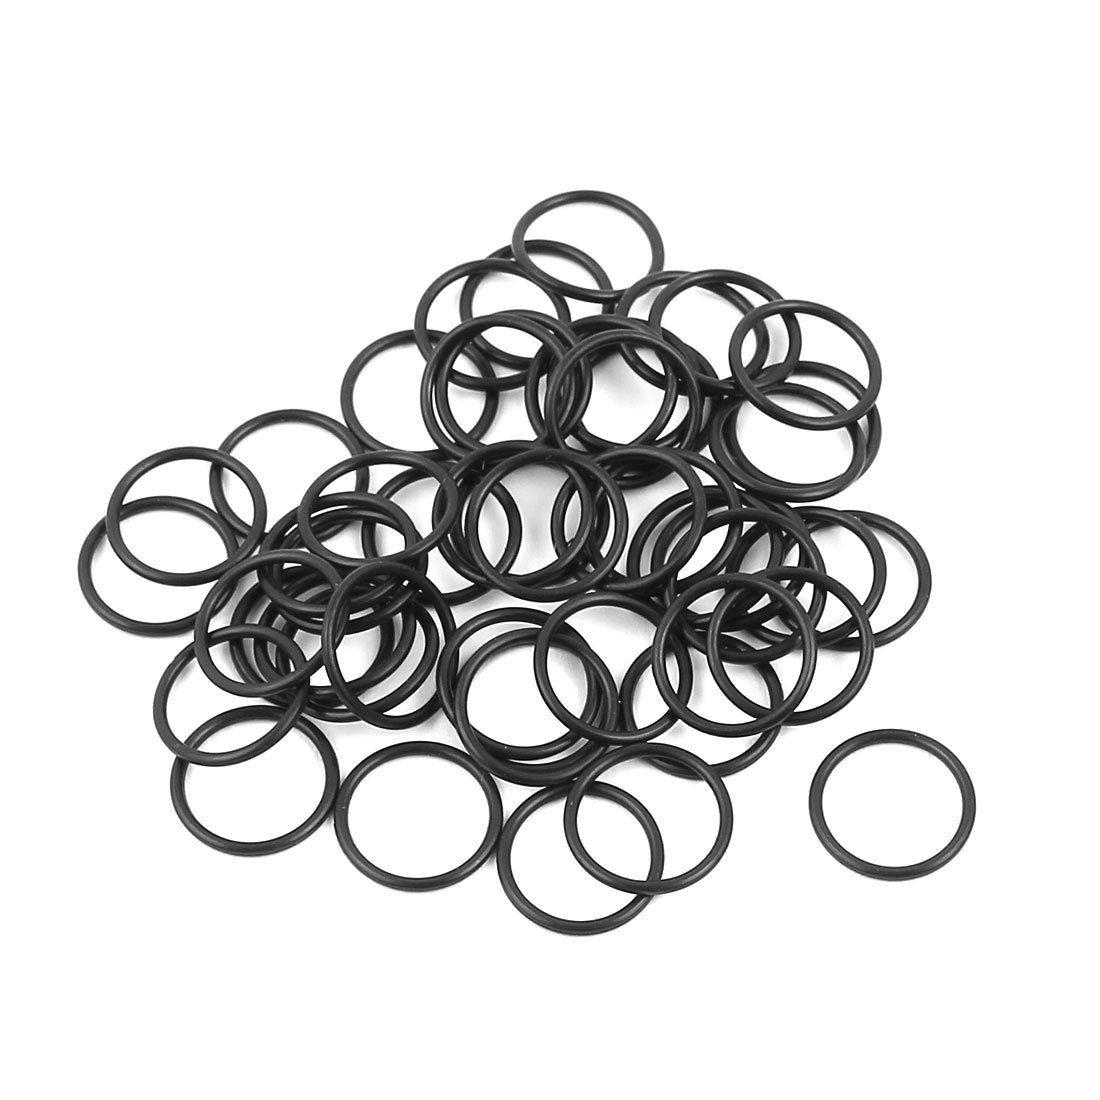 50 Pcs Black 7.9mm x 0.8mm Nitrile Rubber O Ring NBR Oil Sealing Grommets